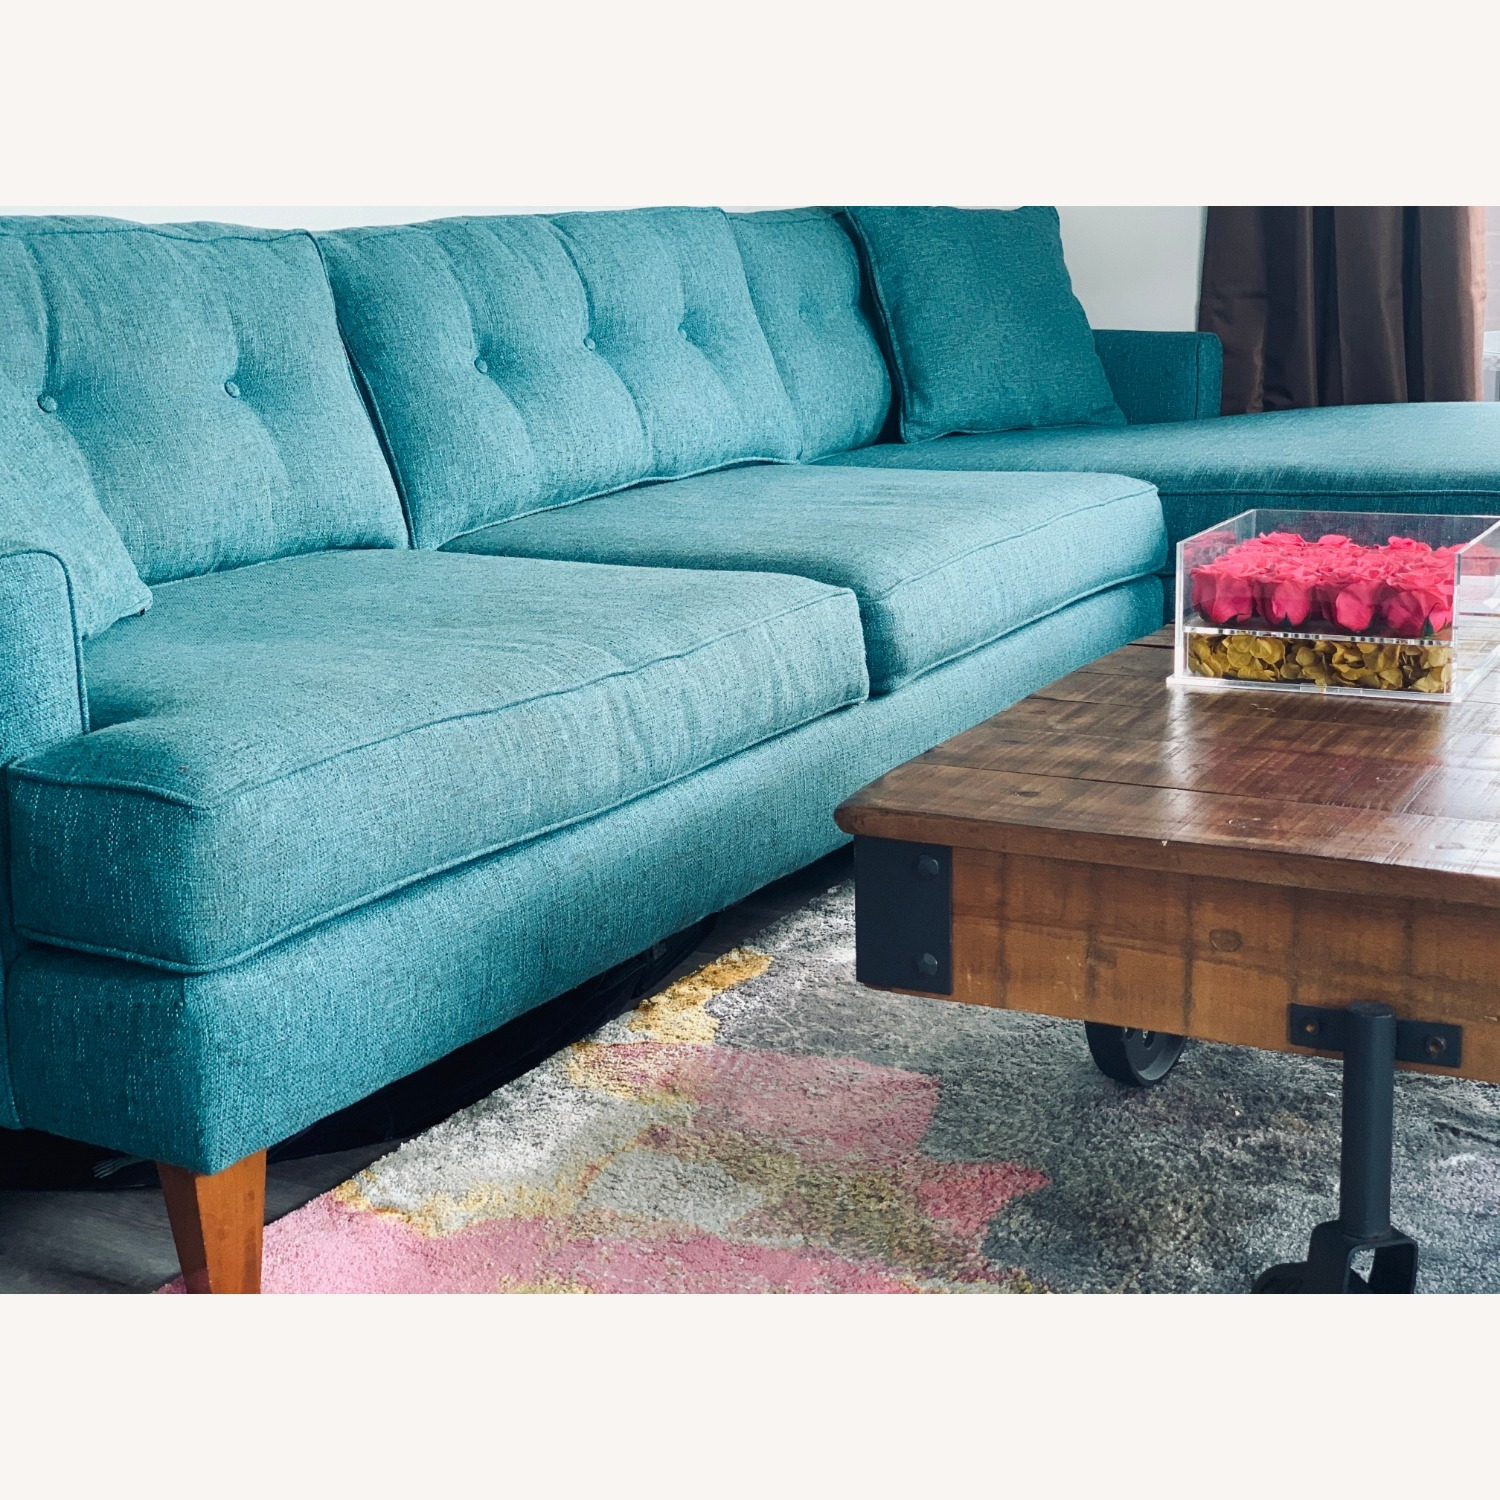 Trendy 2-Piece Sectional Sofa - image-3